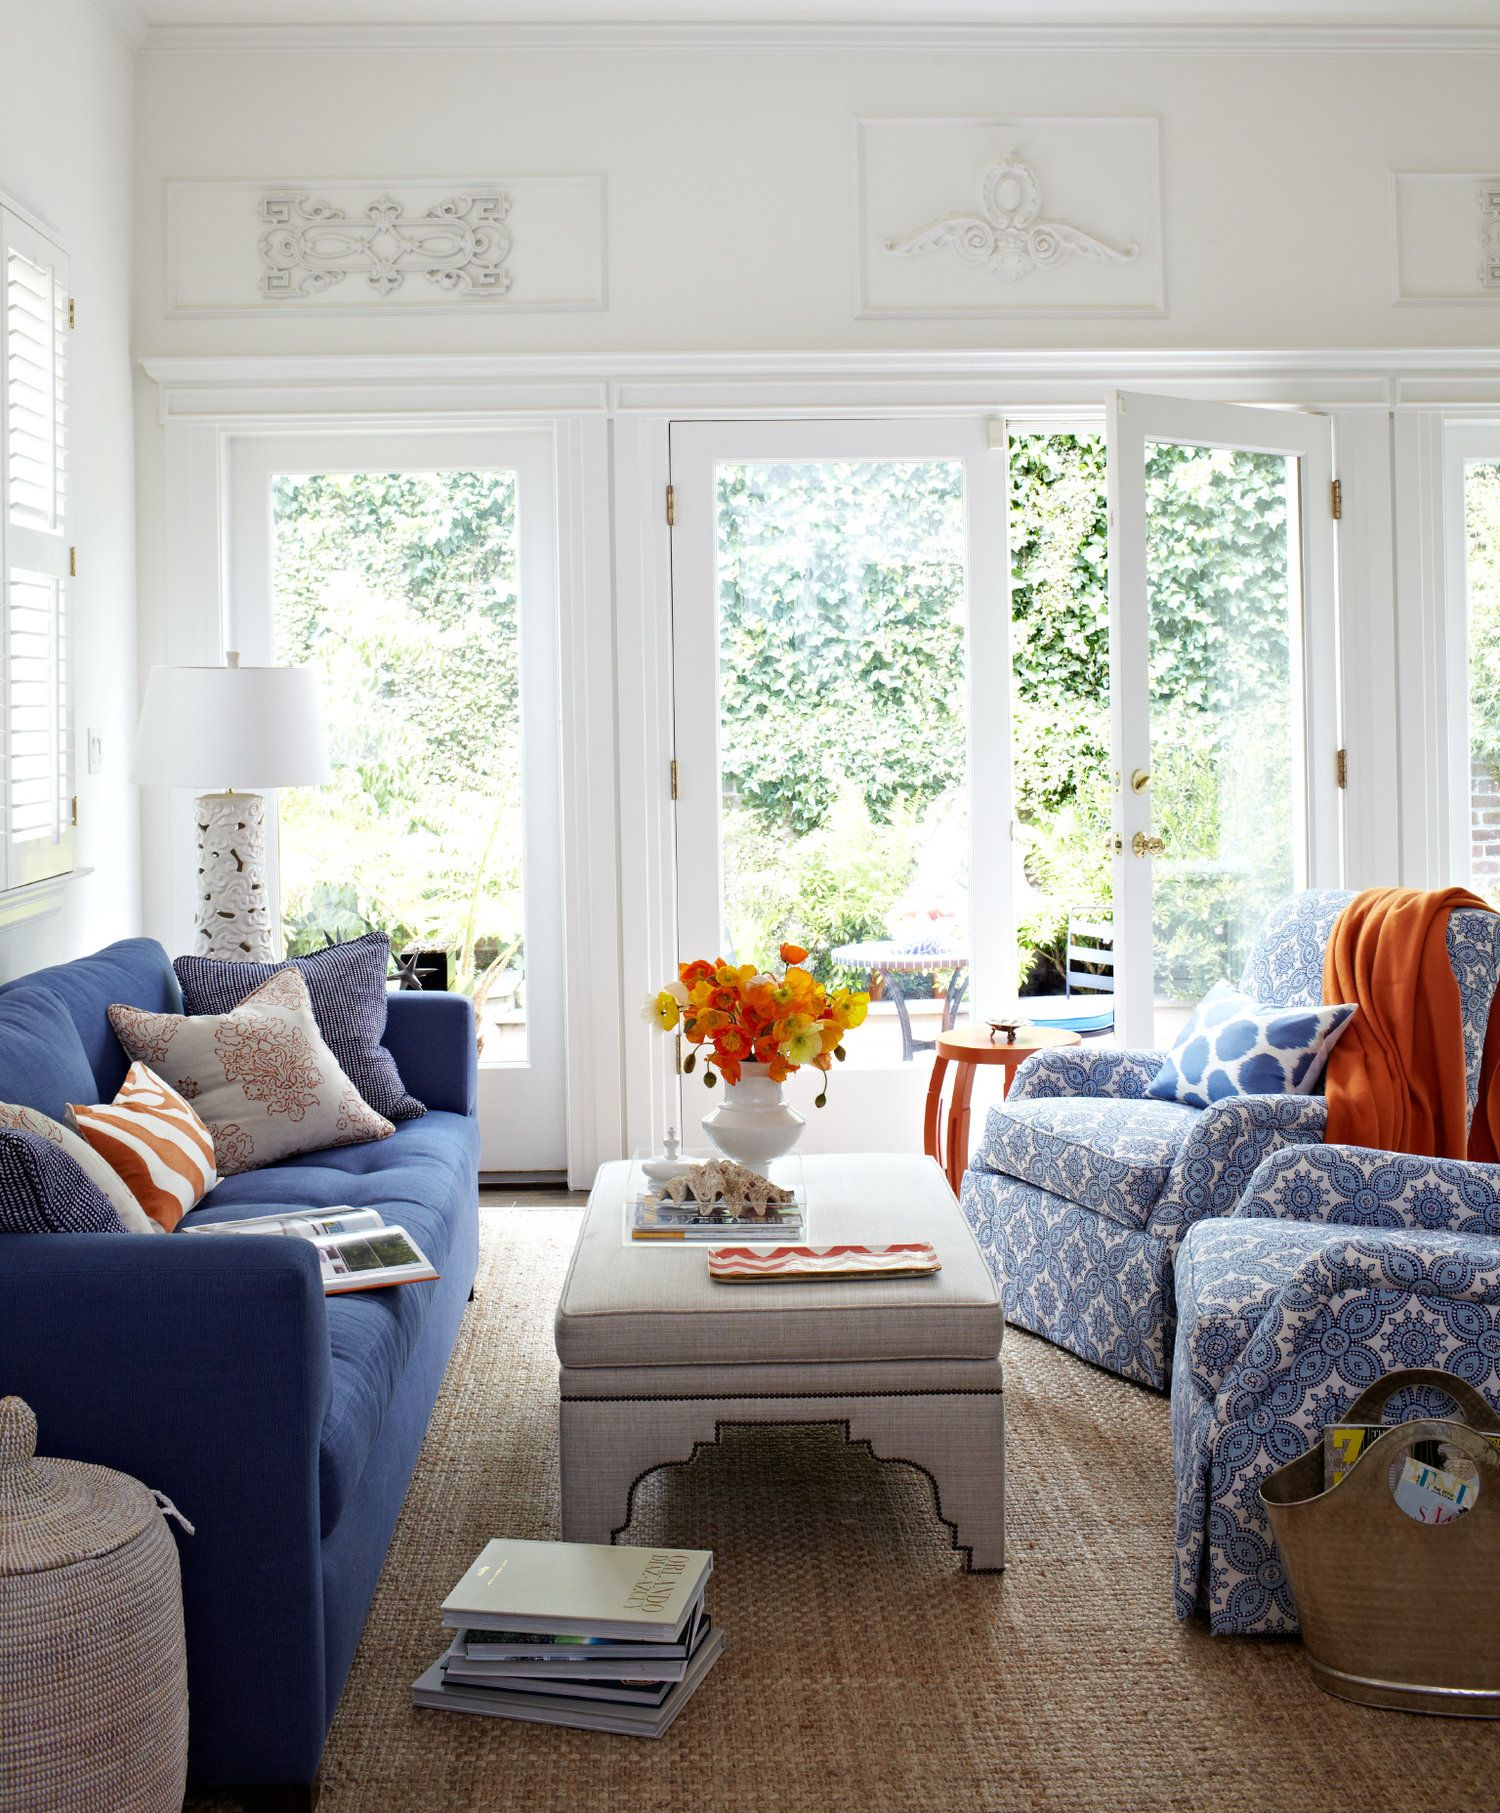 unspecified-8.jpeg | Home Inspiration - Living areas, etc ...